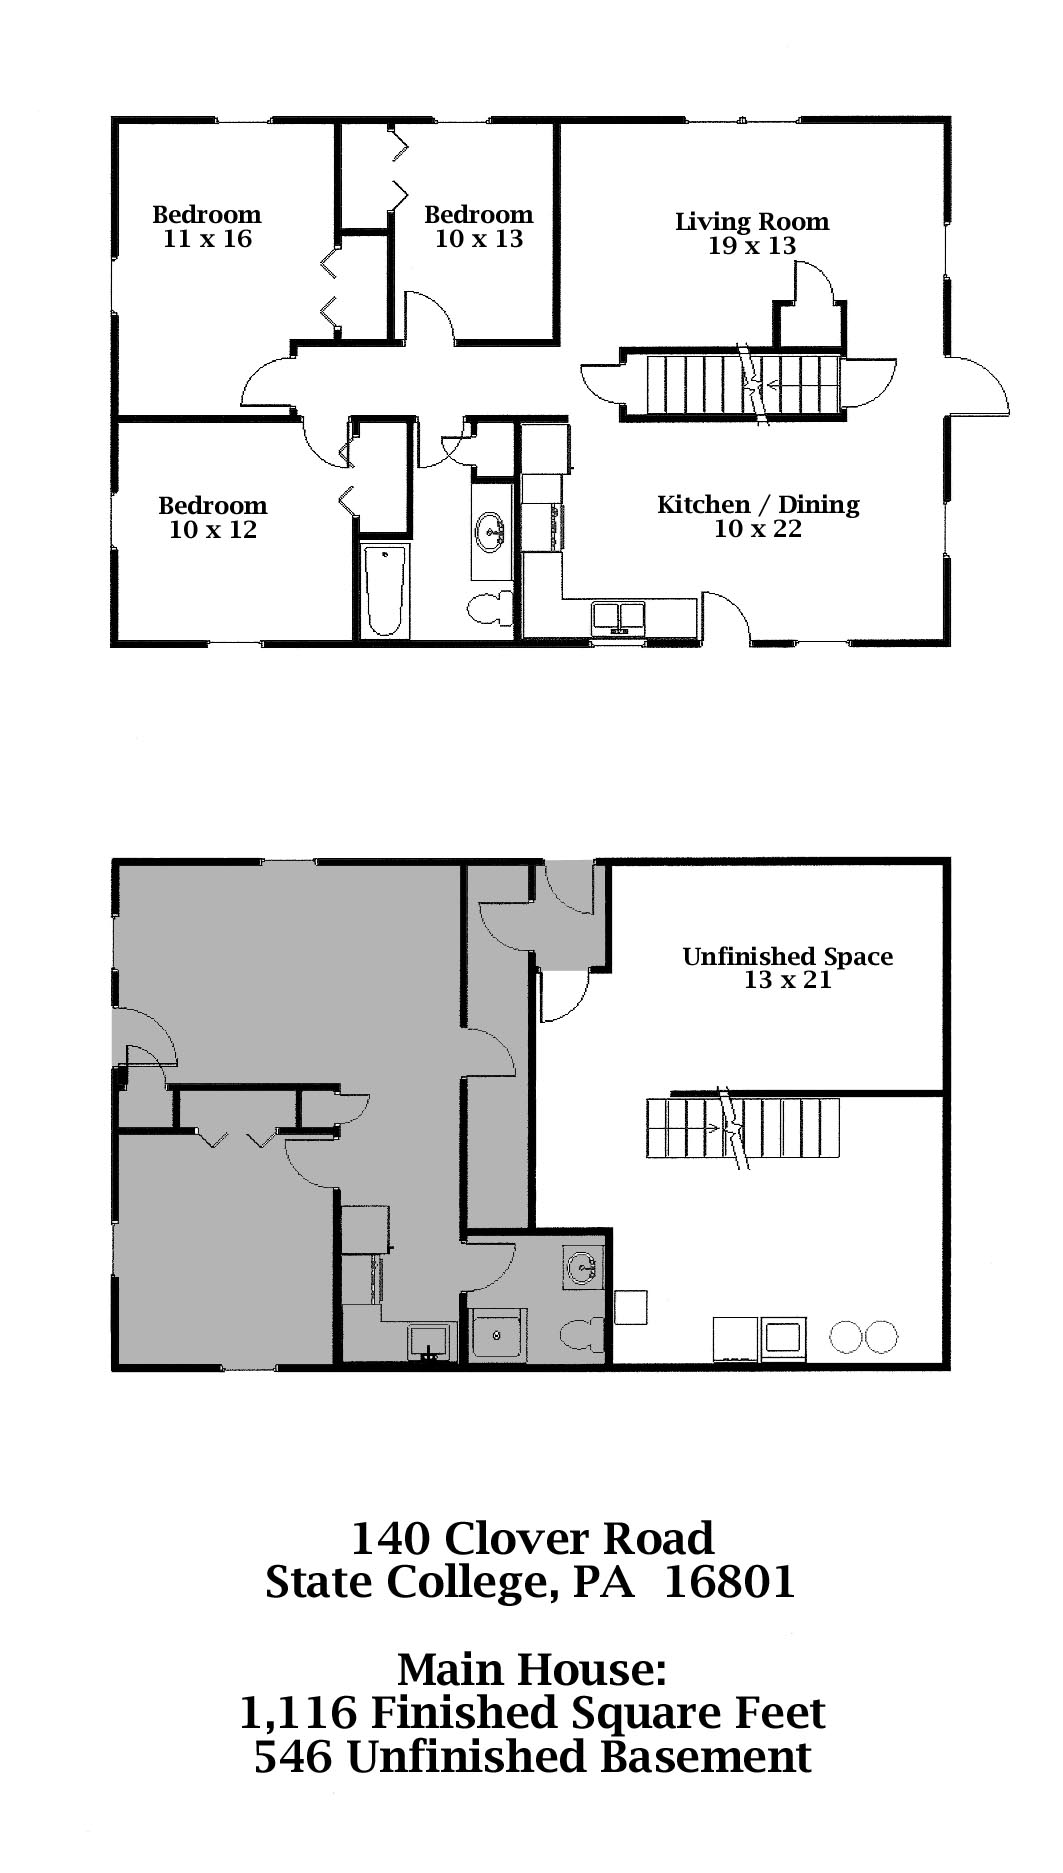 Floor plan for the 3-bedroom apartment for rent at 140 Clover Road, State College PA